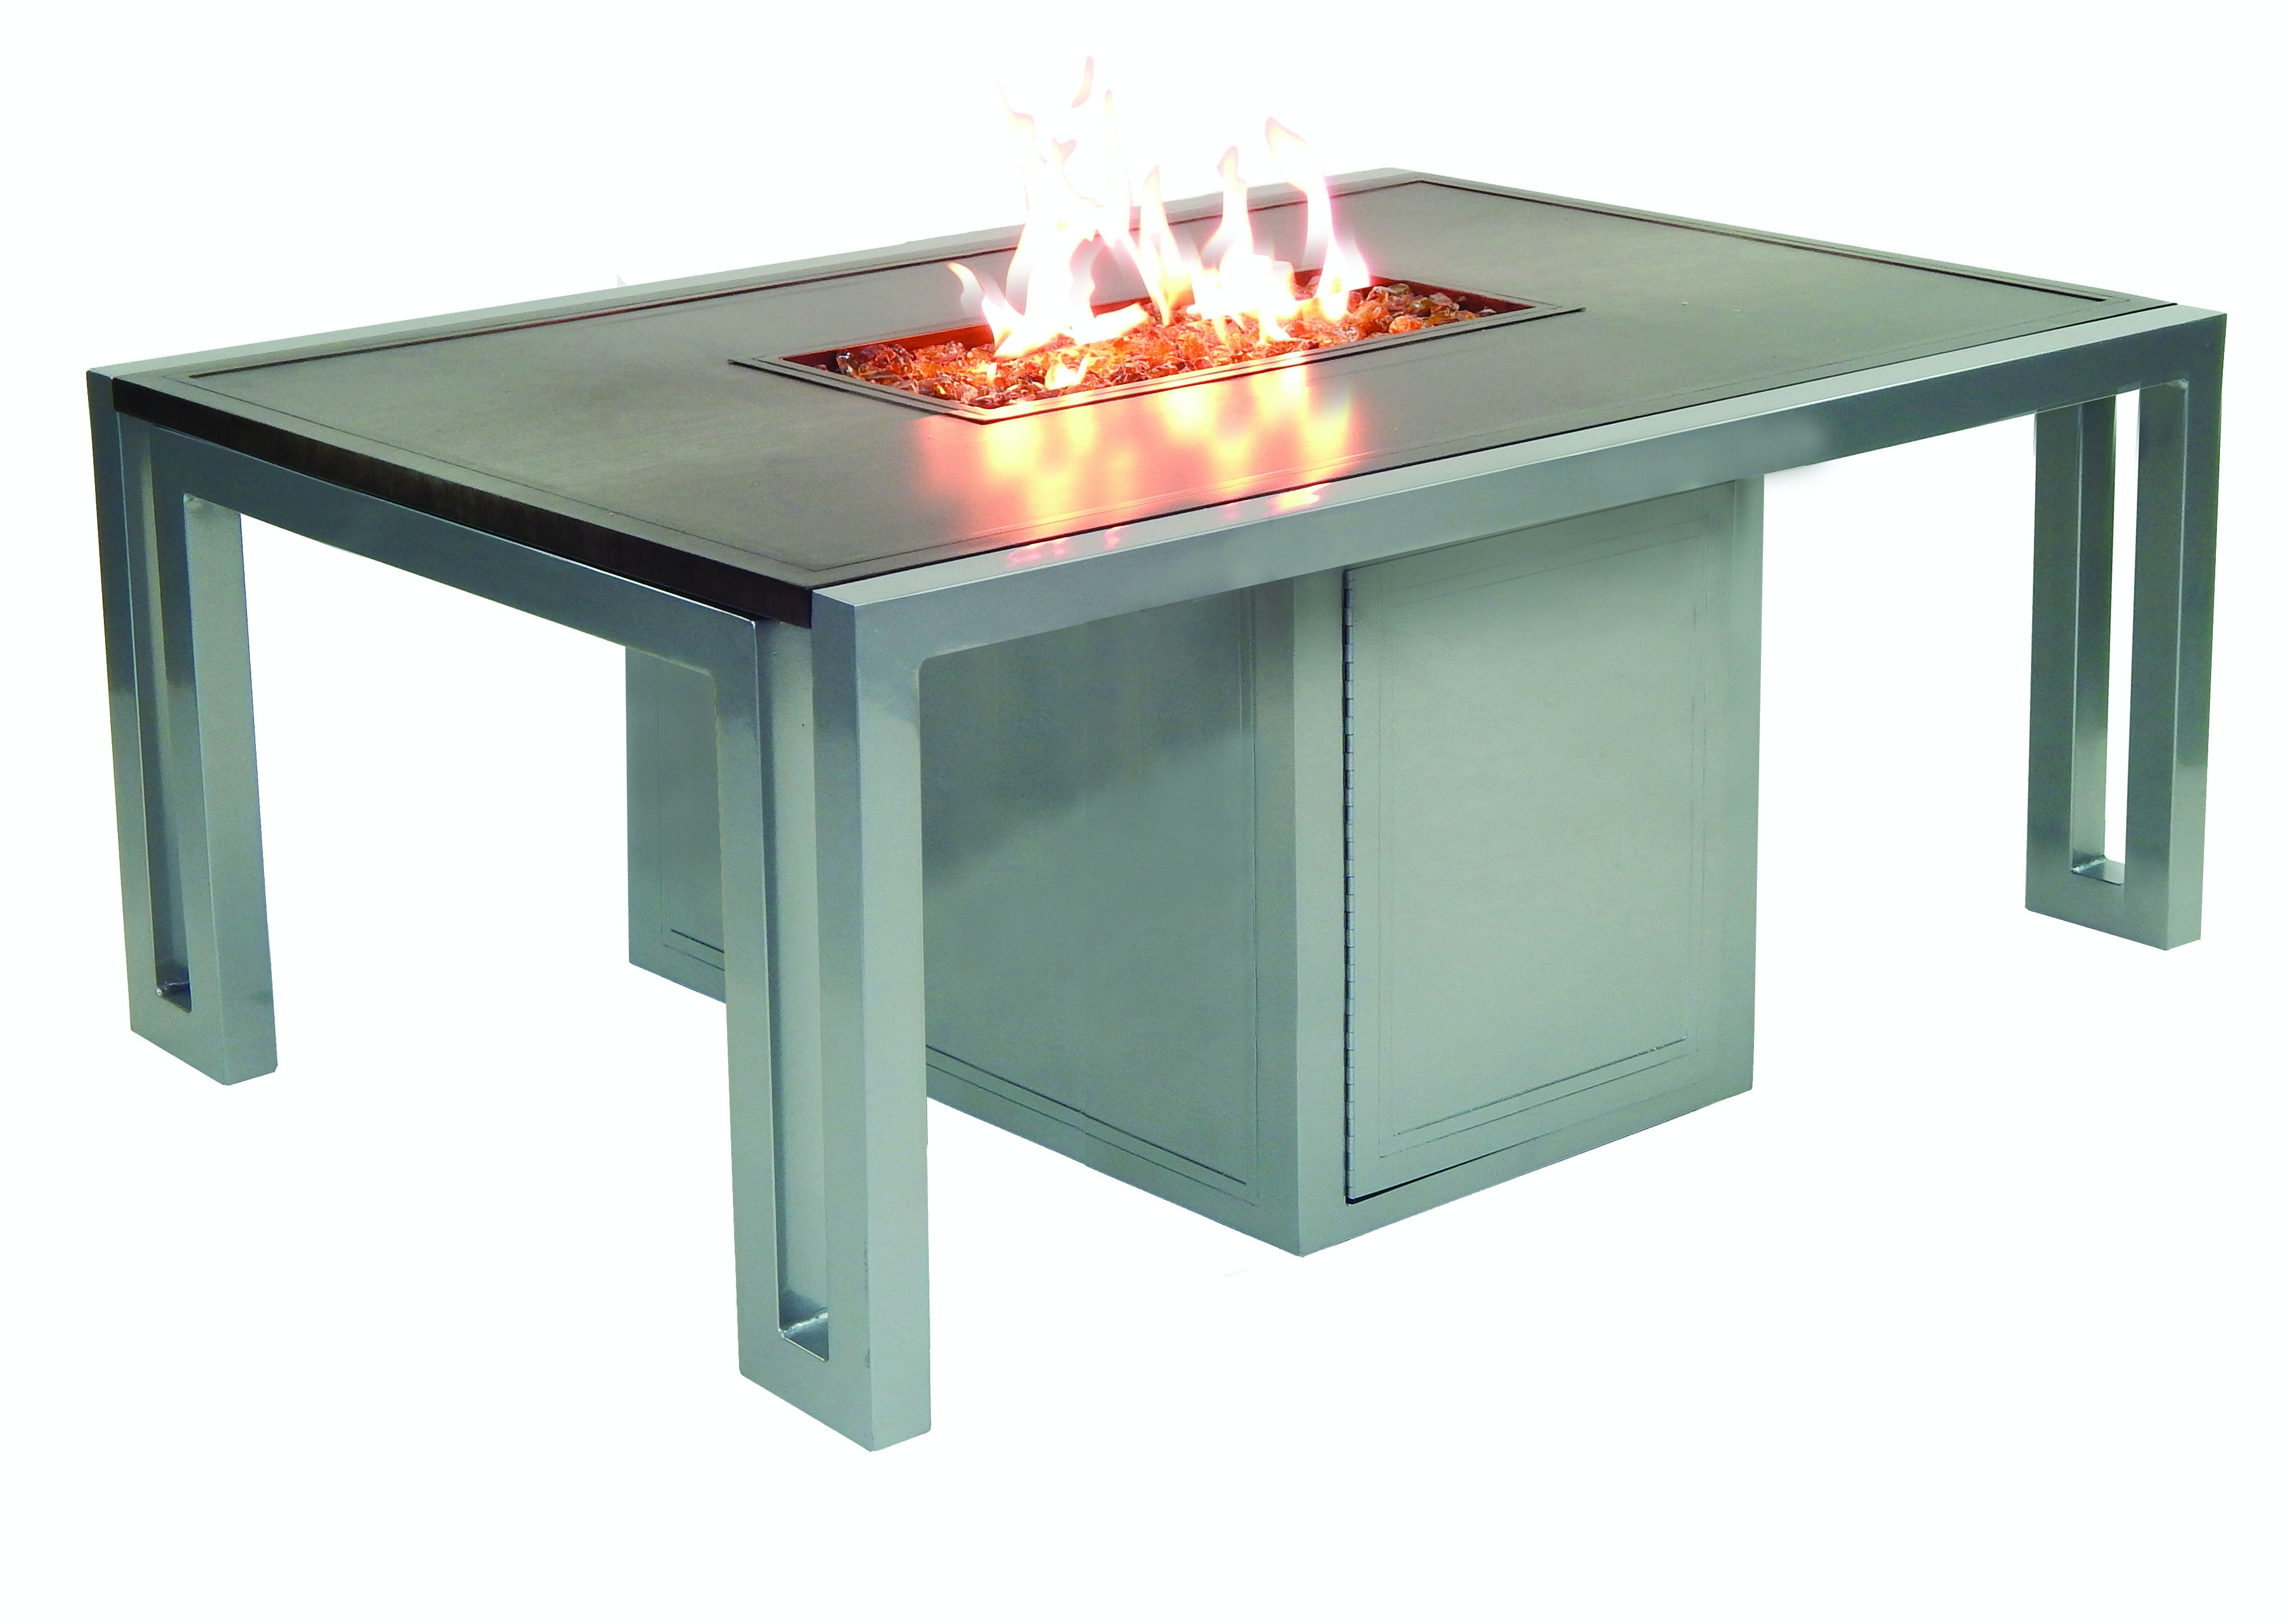 Fh Casual Icon Rectangular Firepit Coffee Table The Fire House Casual Living Store